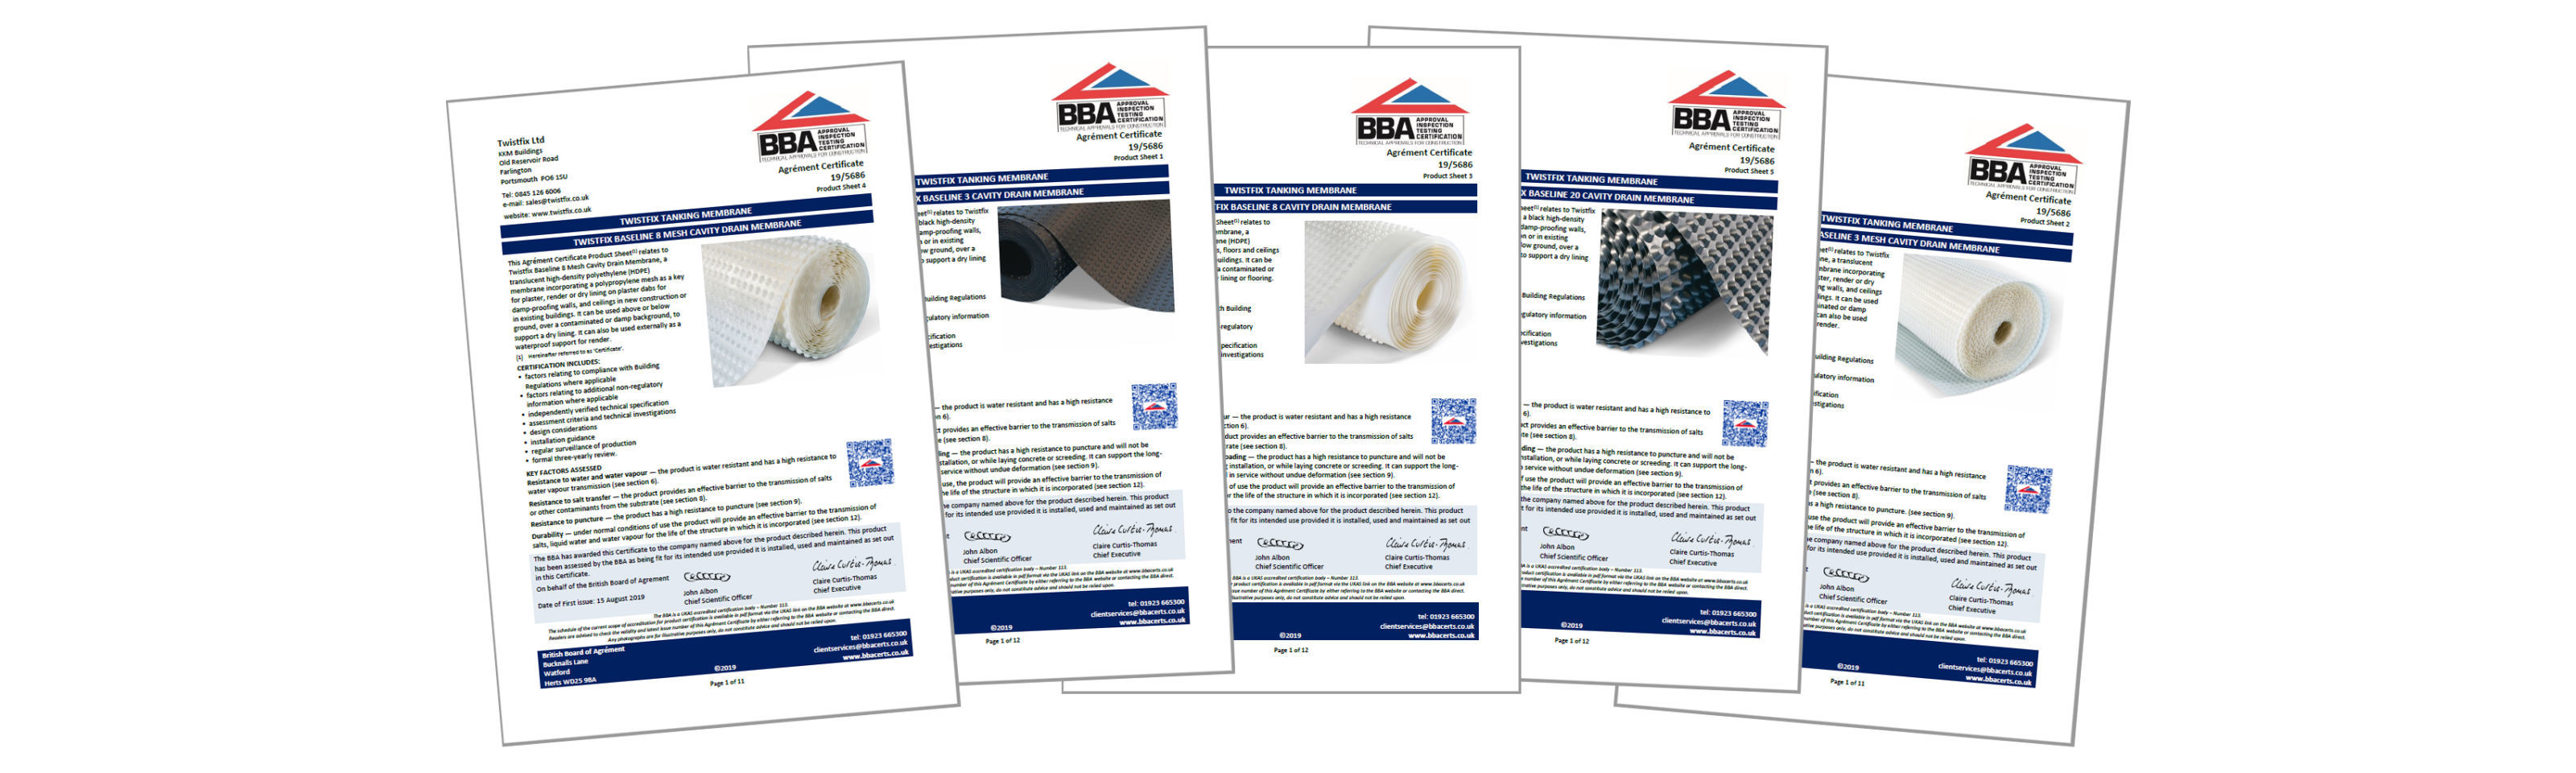 Baseline® Cavity Drain Membrane: Twistfix Celebrate BBA Certification